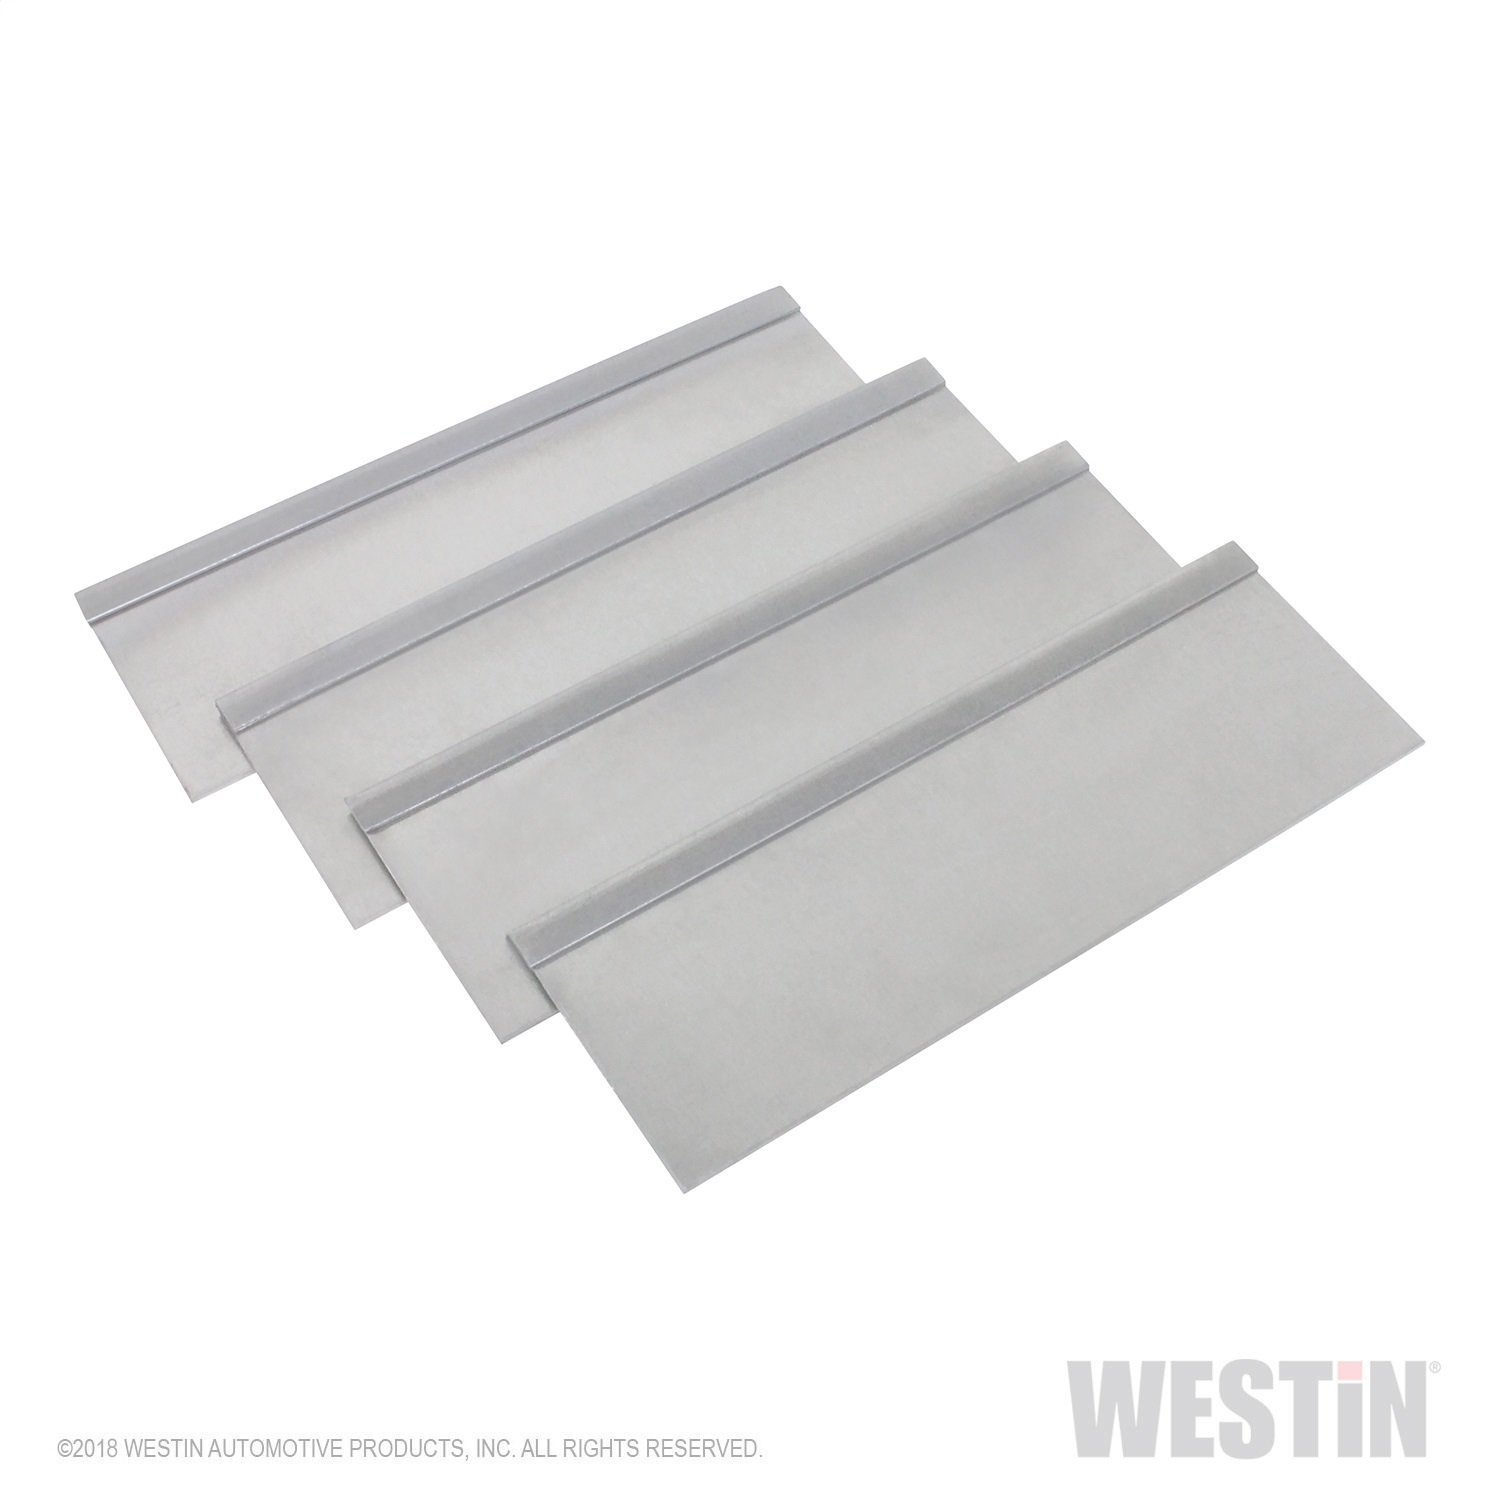 Tool Box Tray 9 x 15 tray w// 4 silver aluminum dividers Westin 80-TR11 80-RB172 /& 80-RB164 80-RB174 Fits tool boxes 80-RB184